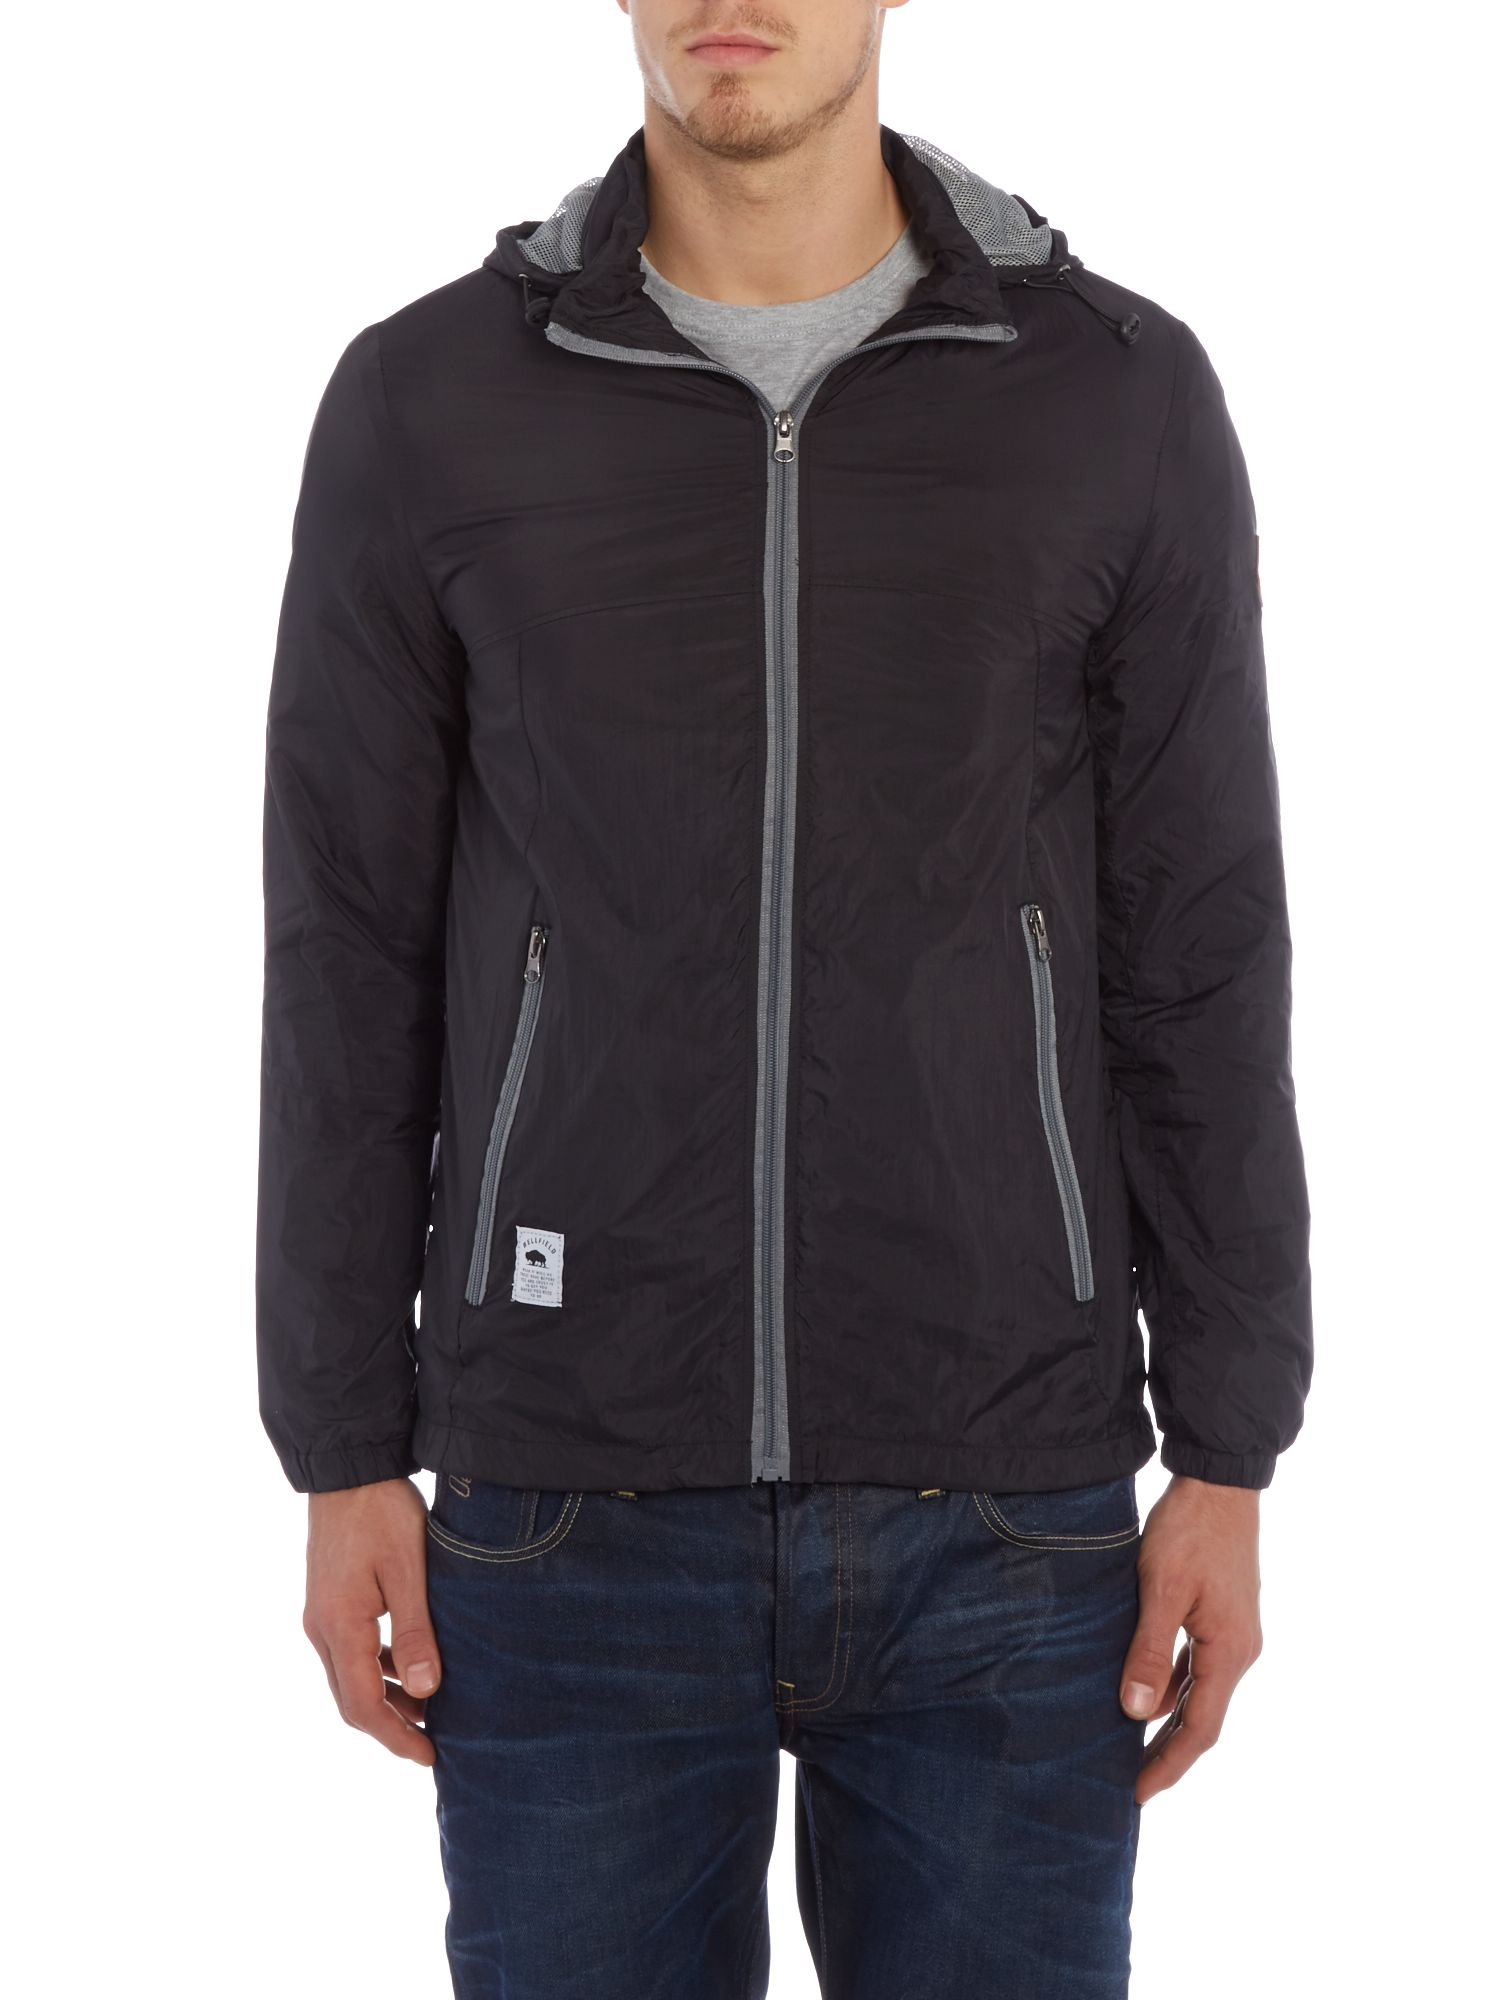 Nylon zip up hooded jacket